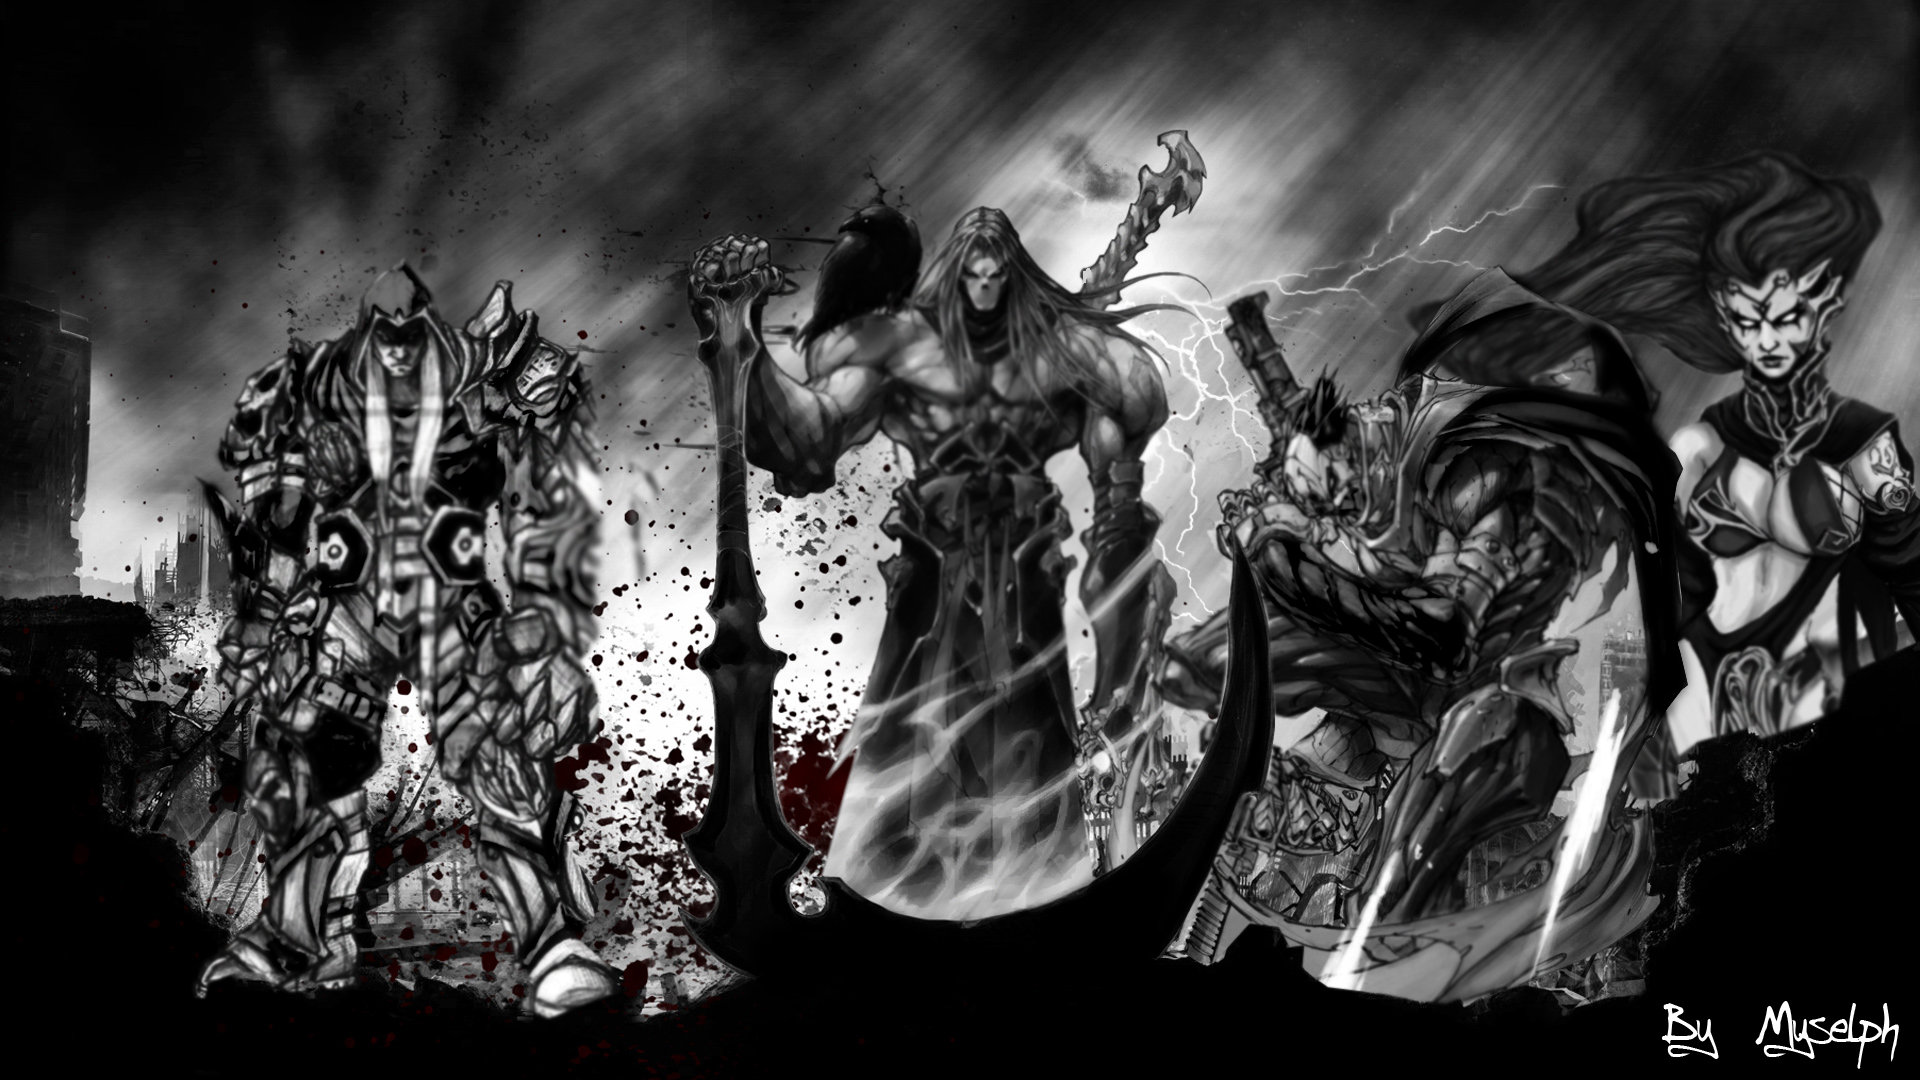 Darksiders Wallpaper Game All Horseman ByMyselph by 1920x1080